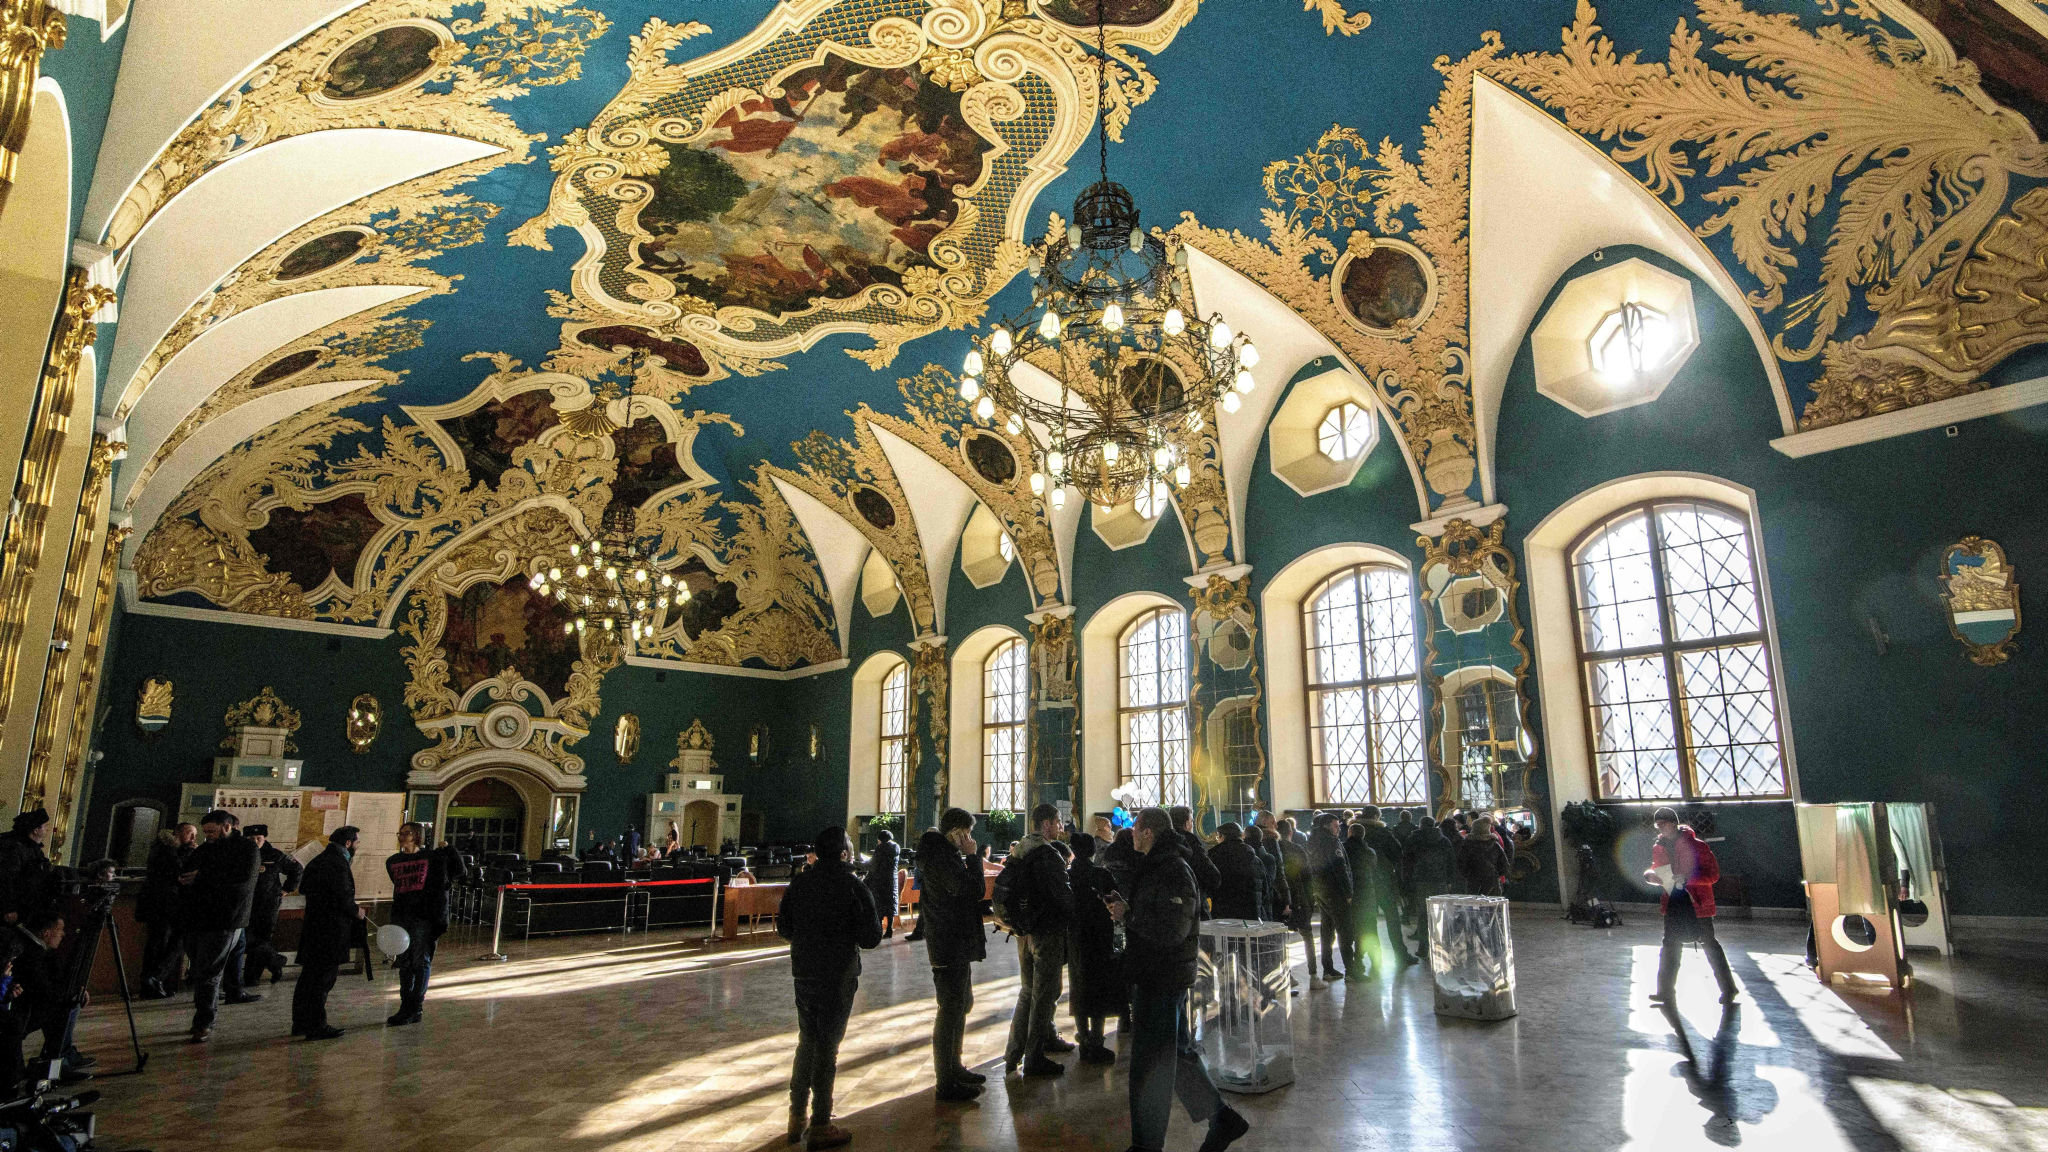 Russians sceptical of Putin's grand projects as economy founders